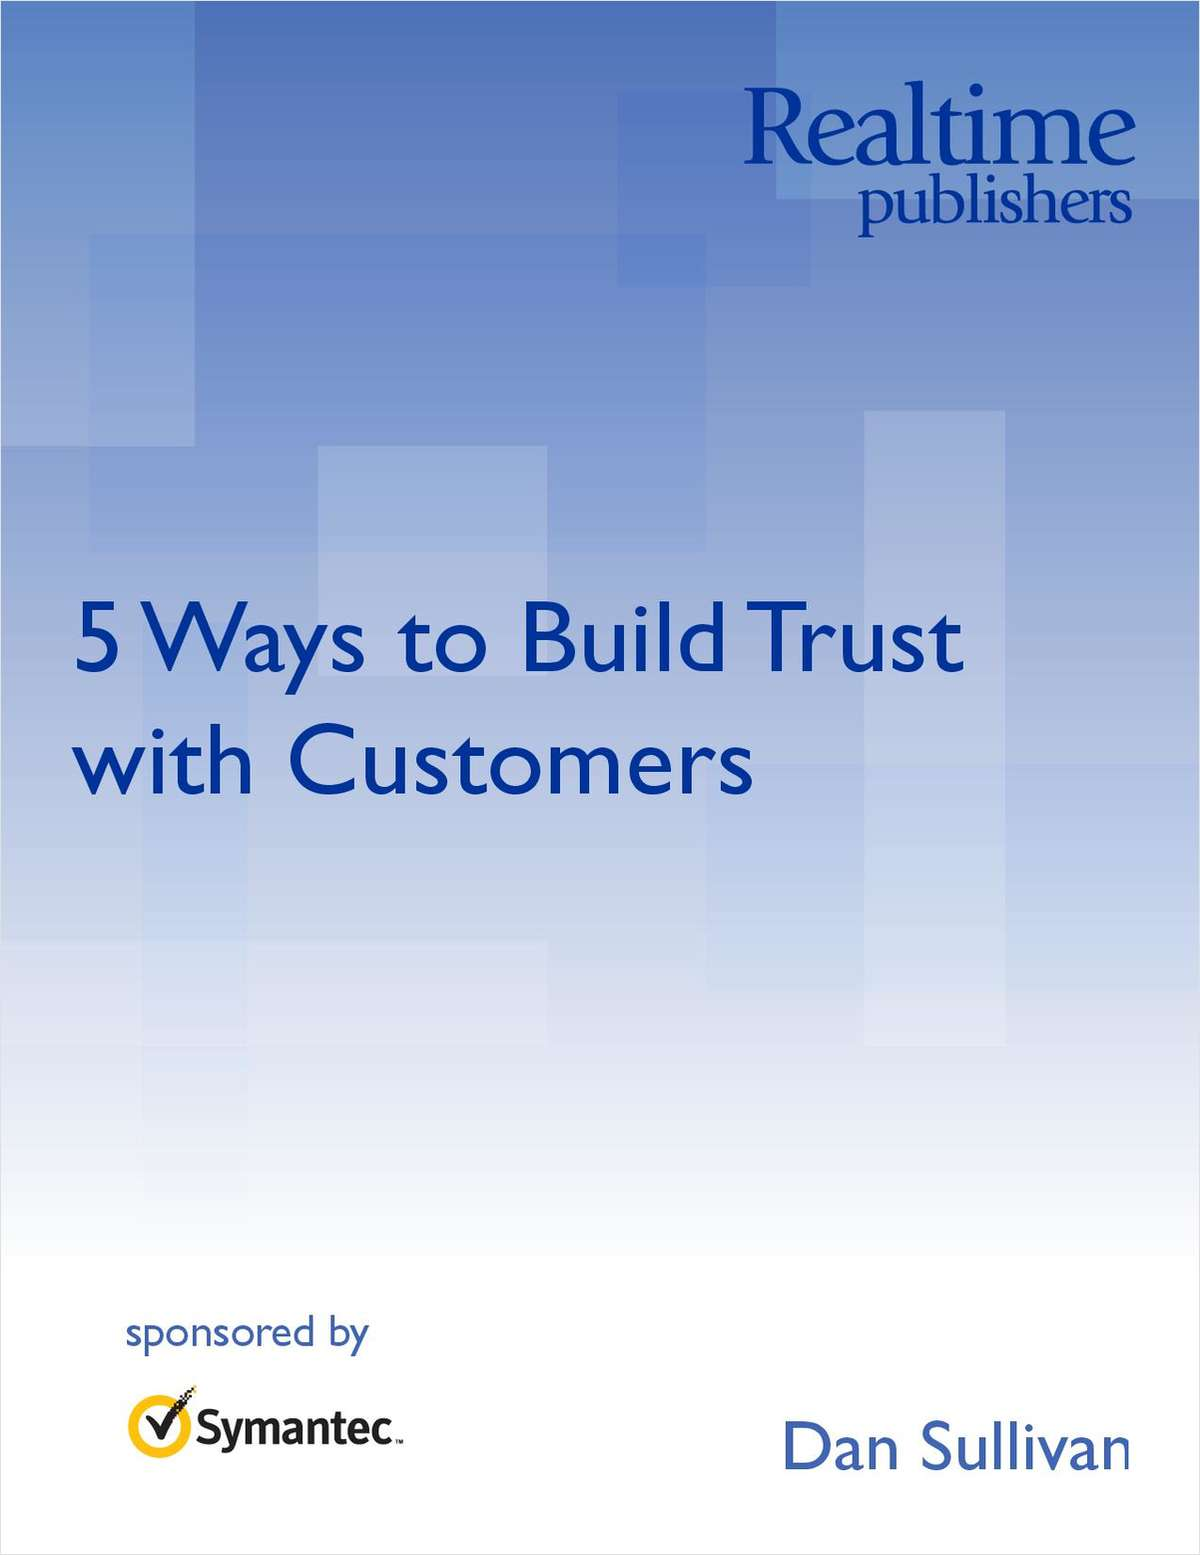 5 Ways to Build Trust with Customers